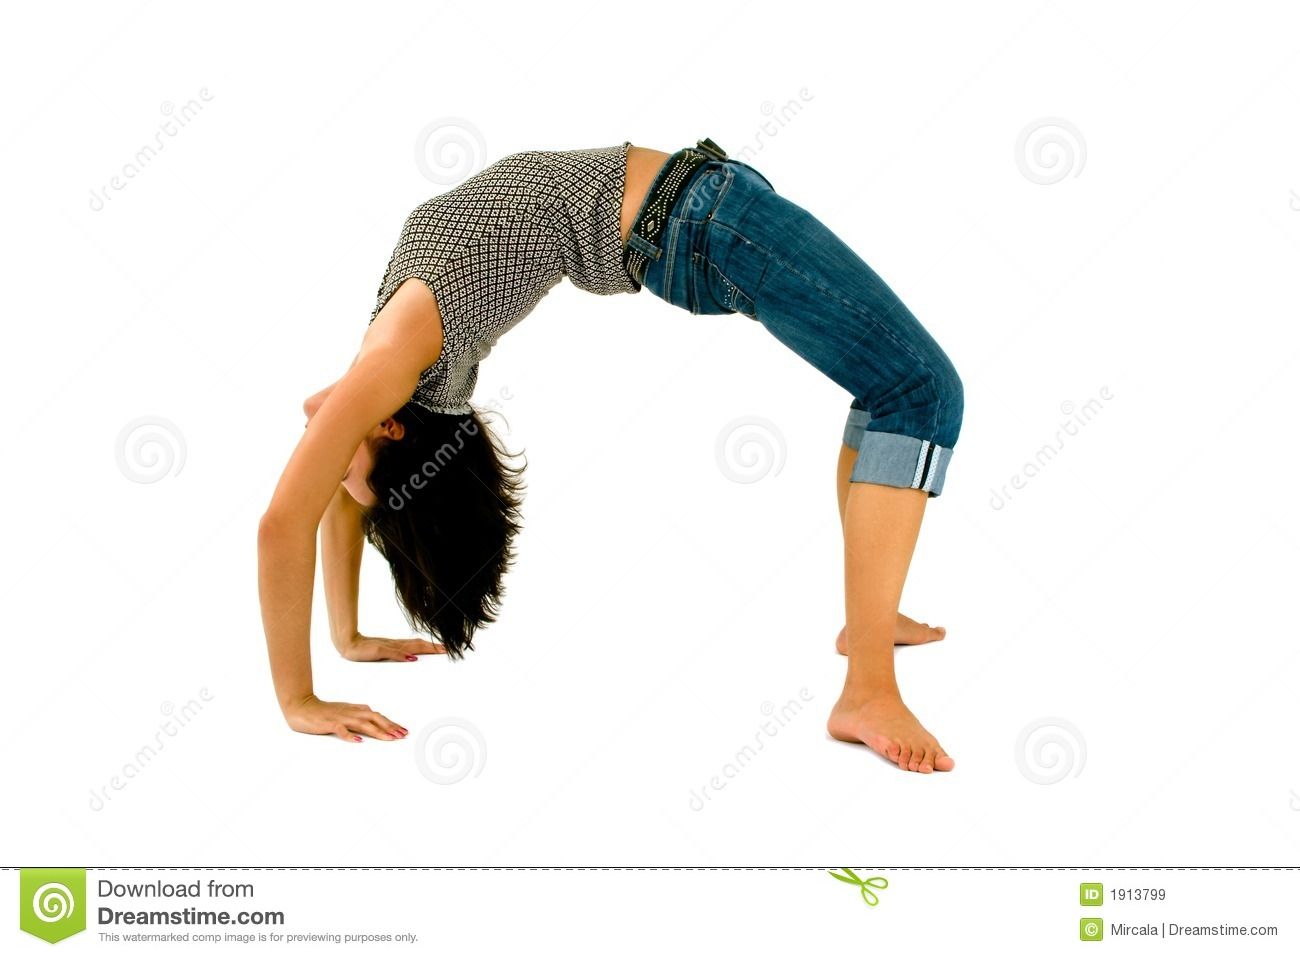 Royalty Free Stock Images: Backbend. Image: 1913799